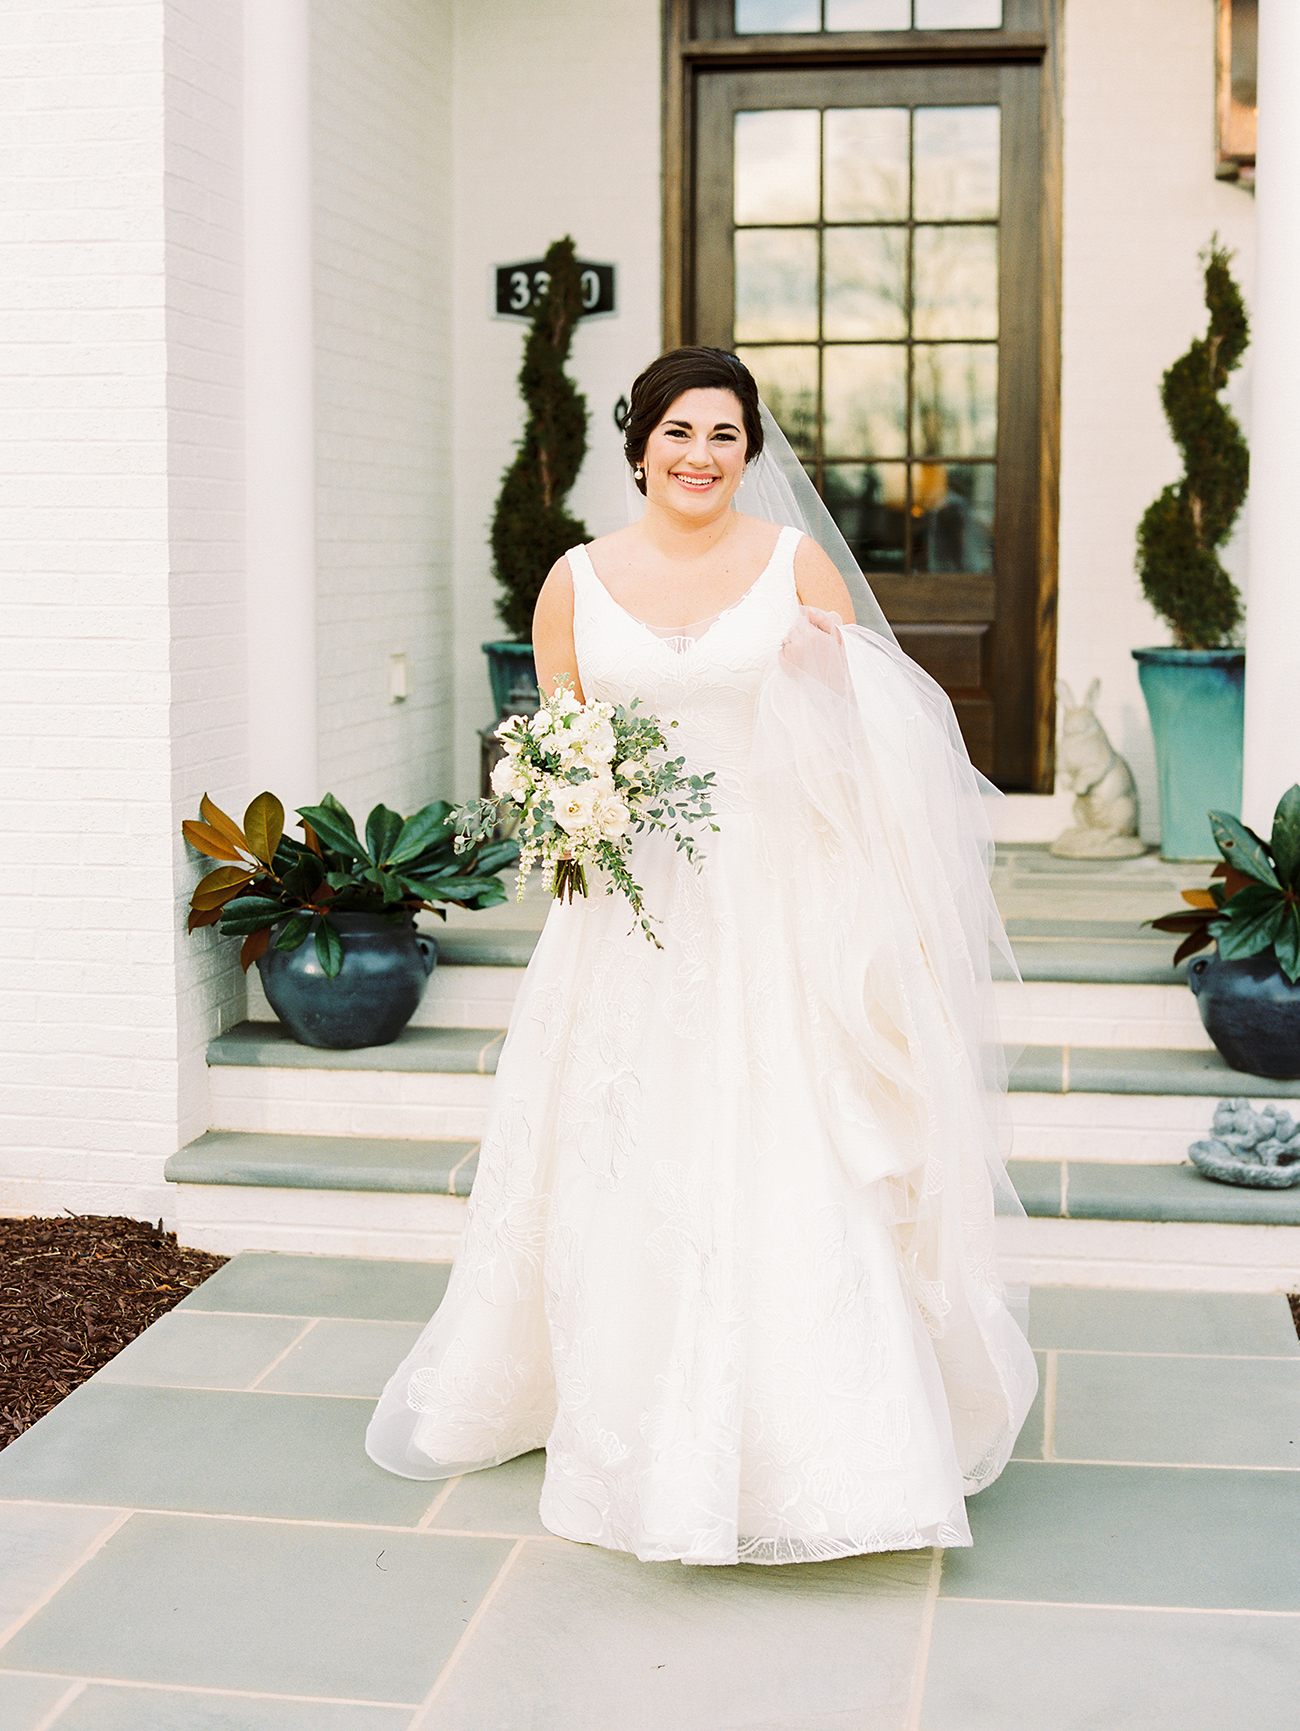 nrp-nancy-ashleydavisbridals-2045